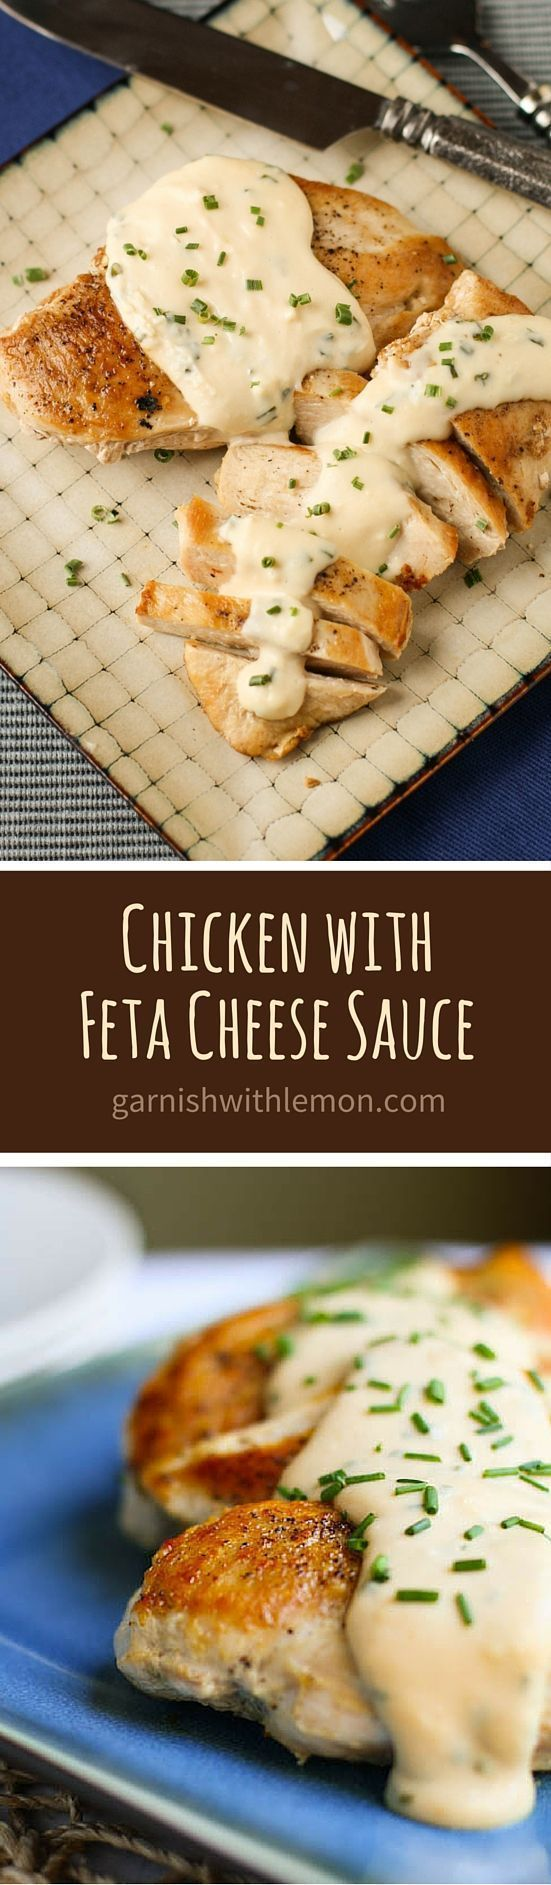 Don't miss our family's favorite easy dinner recipe - Chicken with Feta Cheese Sauce! Add on top of pasta! Not so healthy but looks delicious!: http://www.garnishwithlemon.com/chicken-with-feta-cheese-sauce/